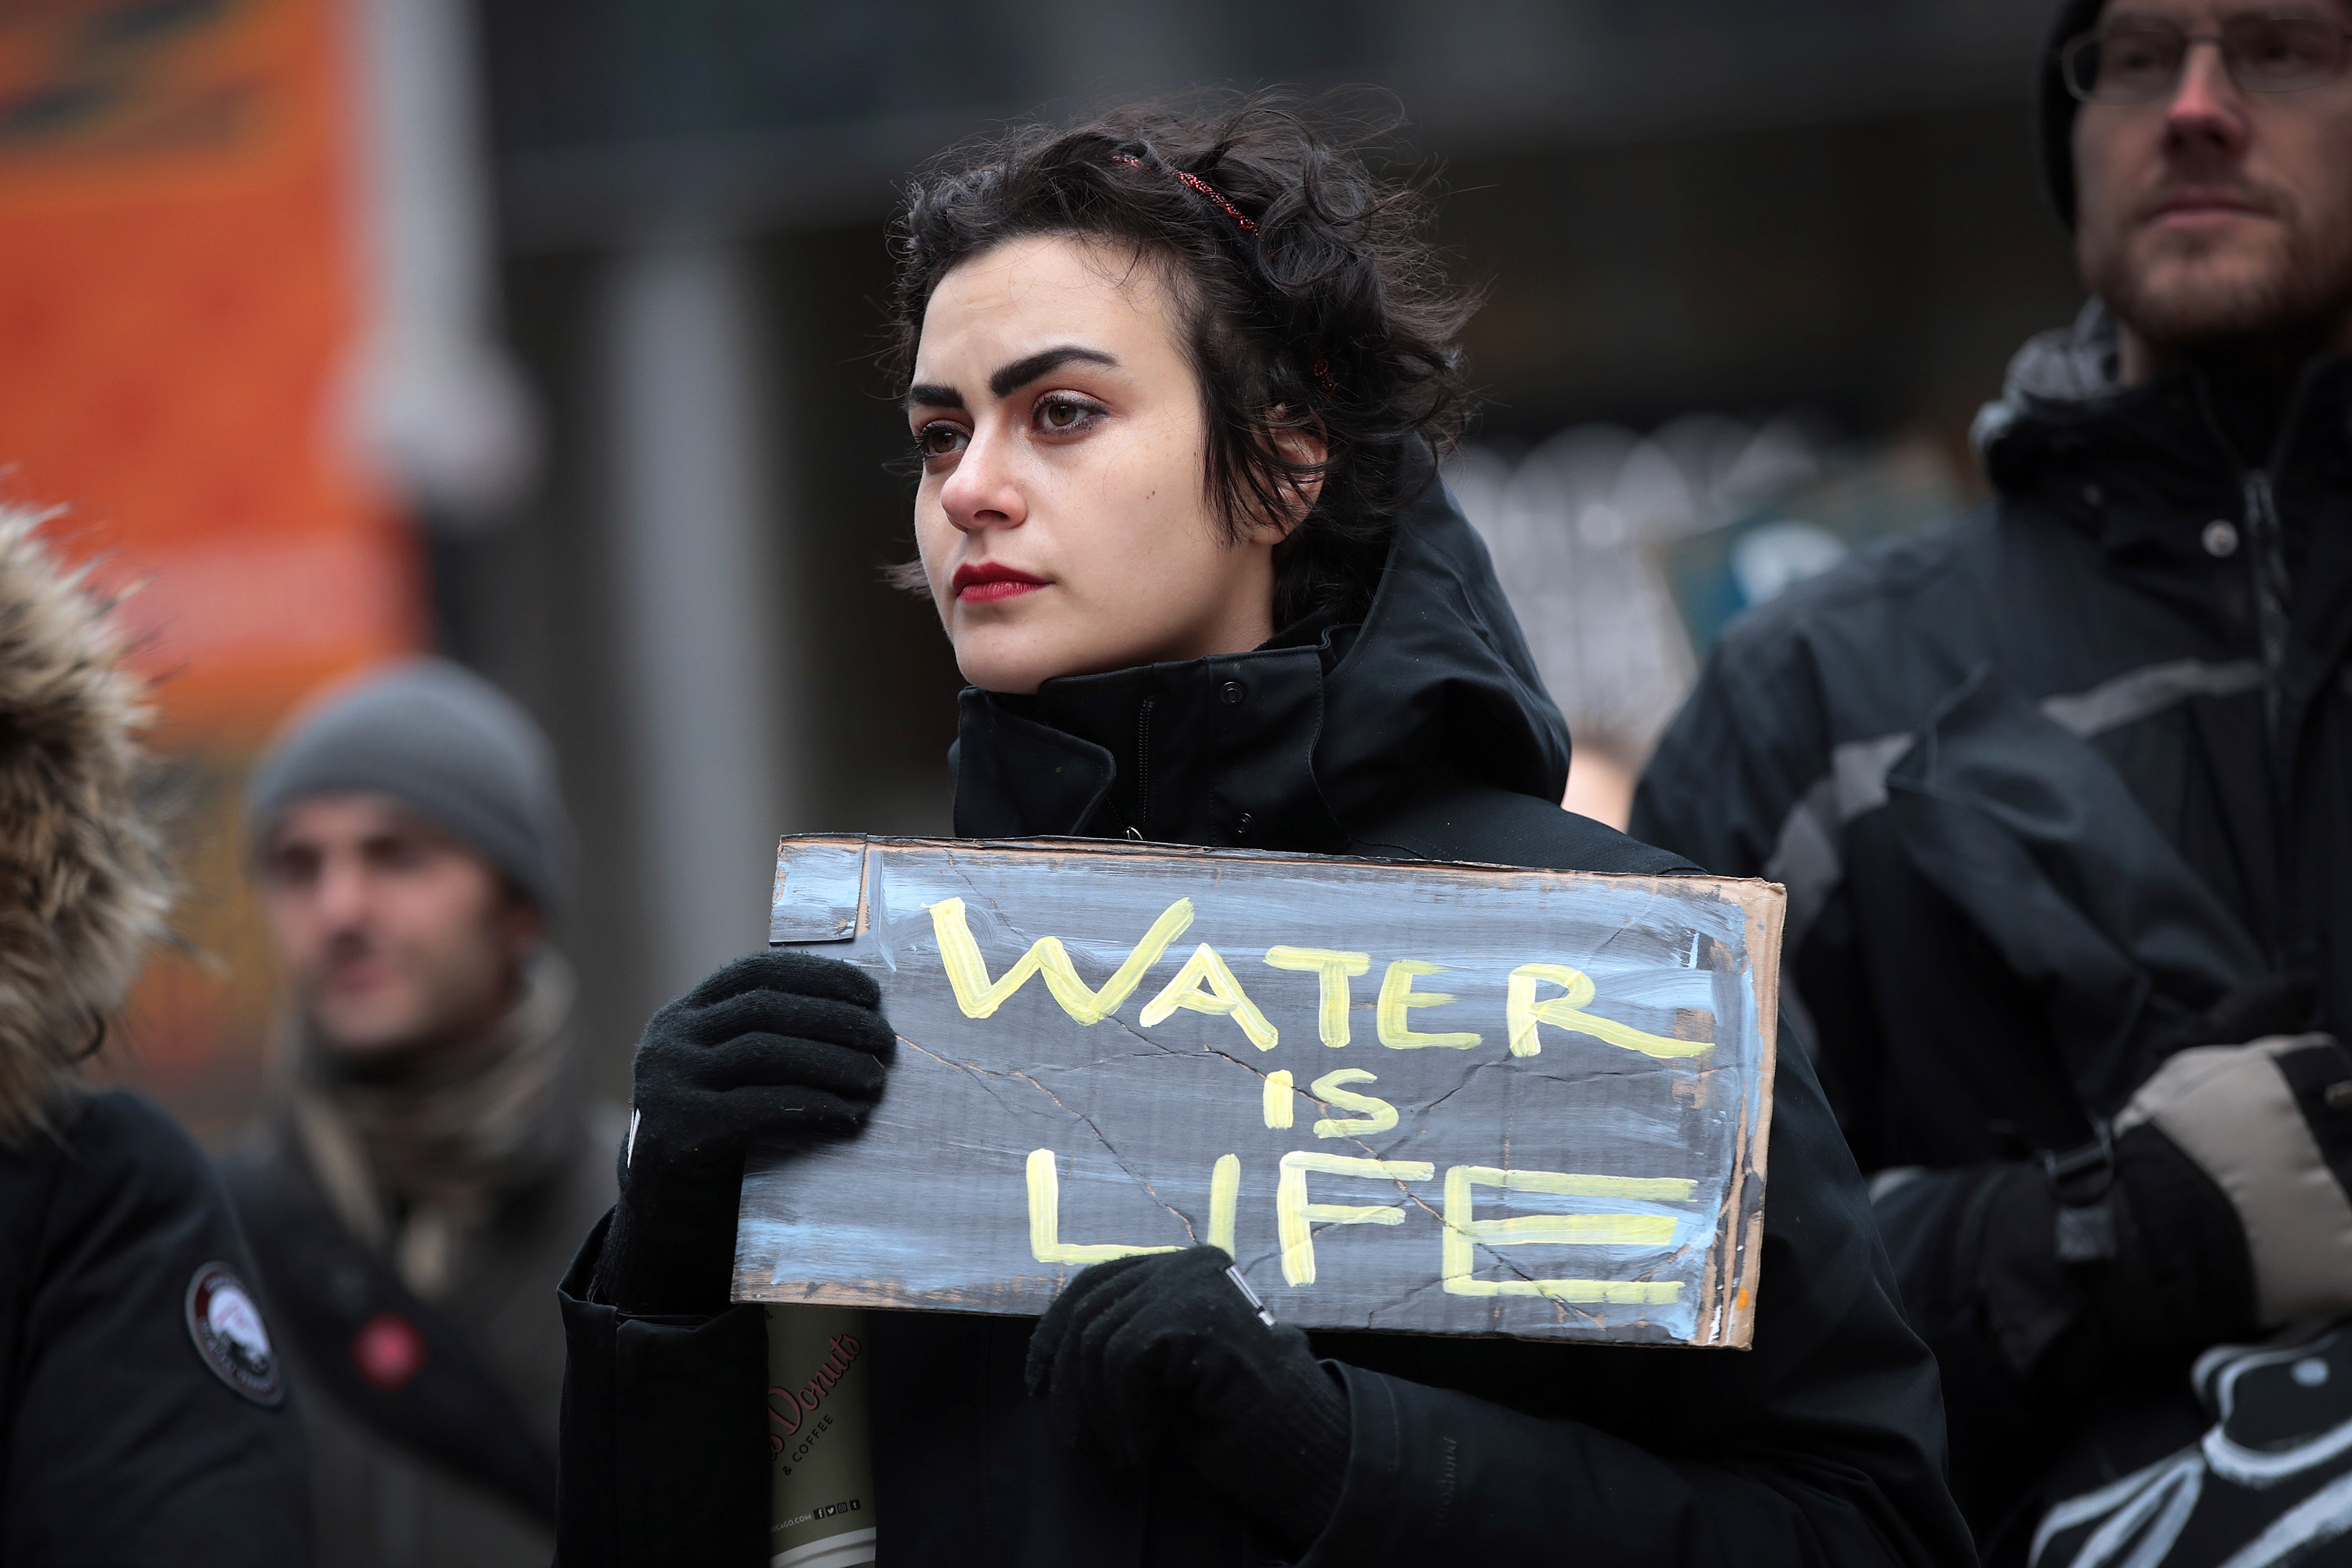 CHICAGO, IL - FEBRUARY 04:  Demonstrators rally downtown before marching to Trump Tower while protesting the construction of the Dakota Access pipeline on February 4, 2017 in Chicago, Illinois. President Donald Trump recently signed executive actions to advance approval of Dakota Access and the Keystone XL pipelines, undermining efforts by the administration of President Barack Obama to block their construction.  (Photo by Scott Olson/Getty Images)